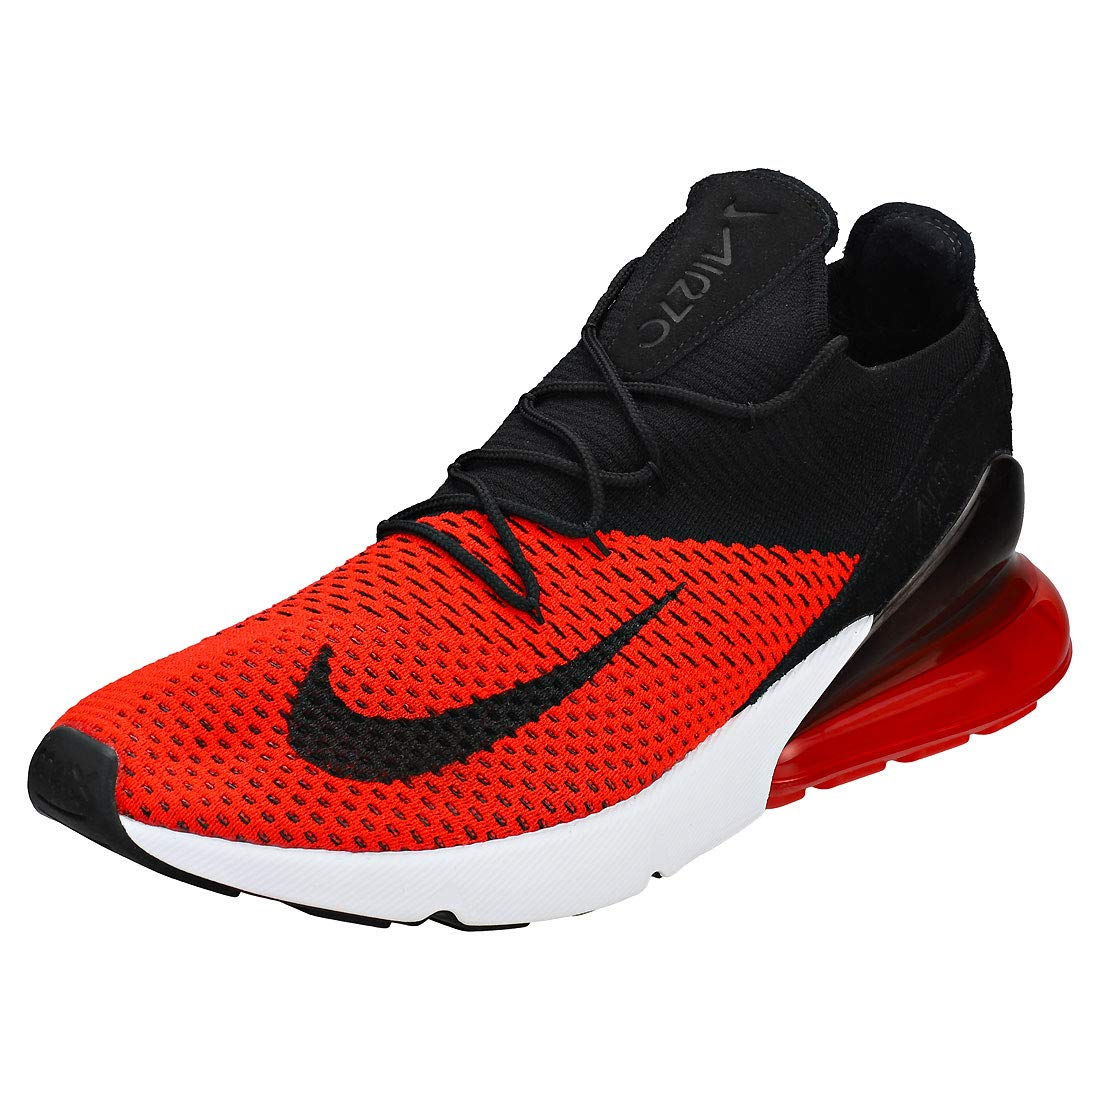 a06a80716c406 Nike Air Max 270 Flyknit - Men s Chili Red Black Challenge Red White